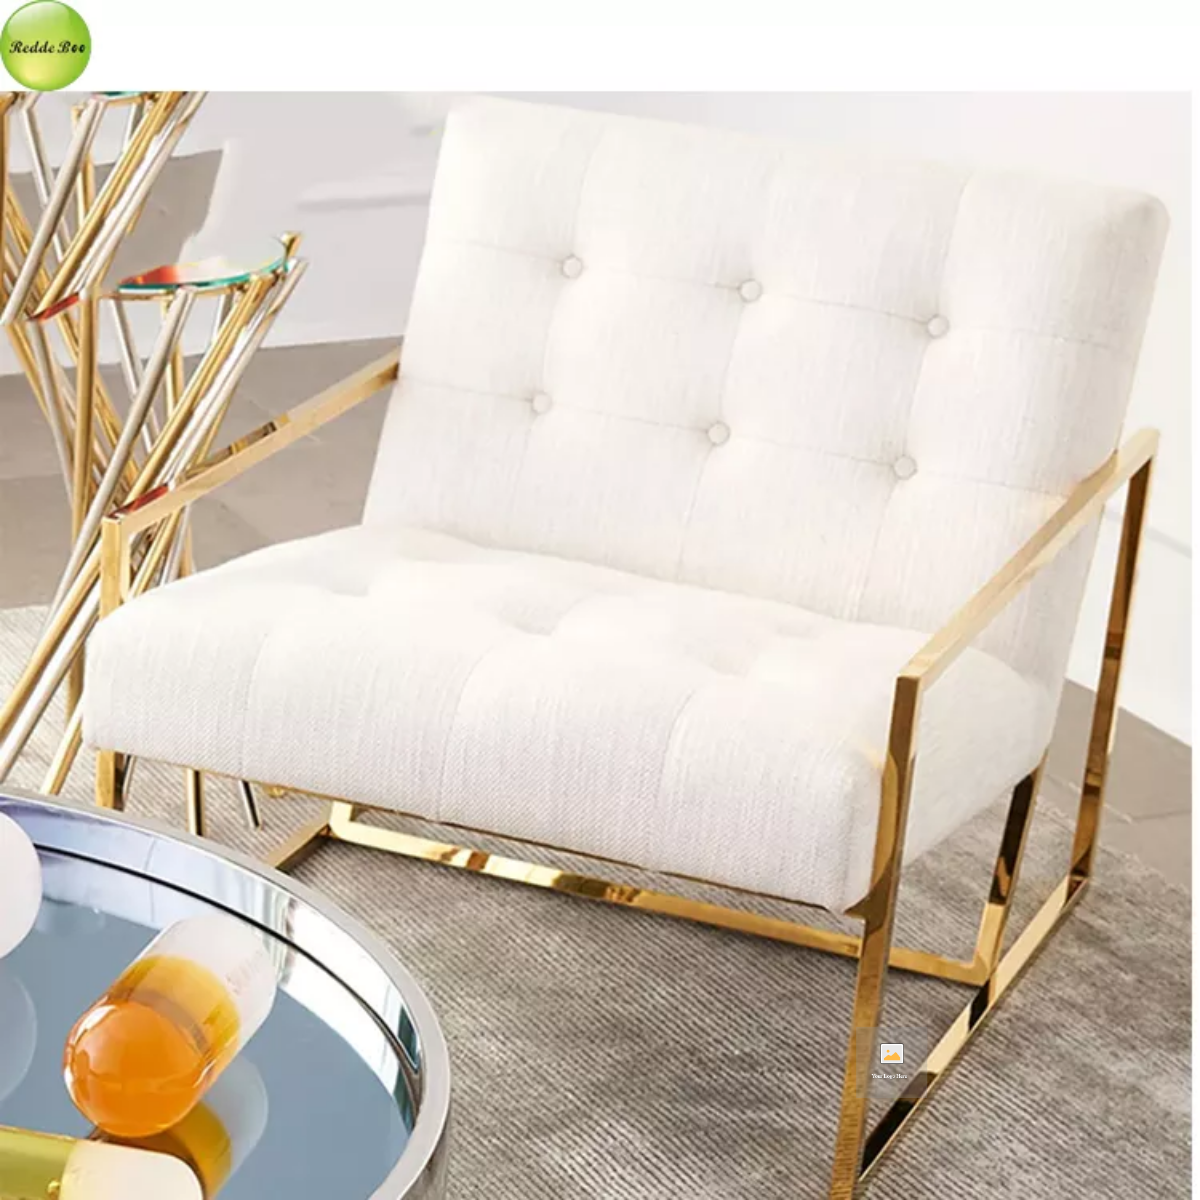 Modern Hotel Bedroom Furniture White Chairs For Weddings,Gold